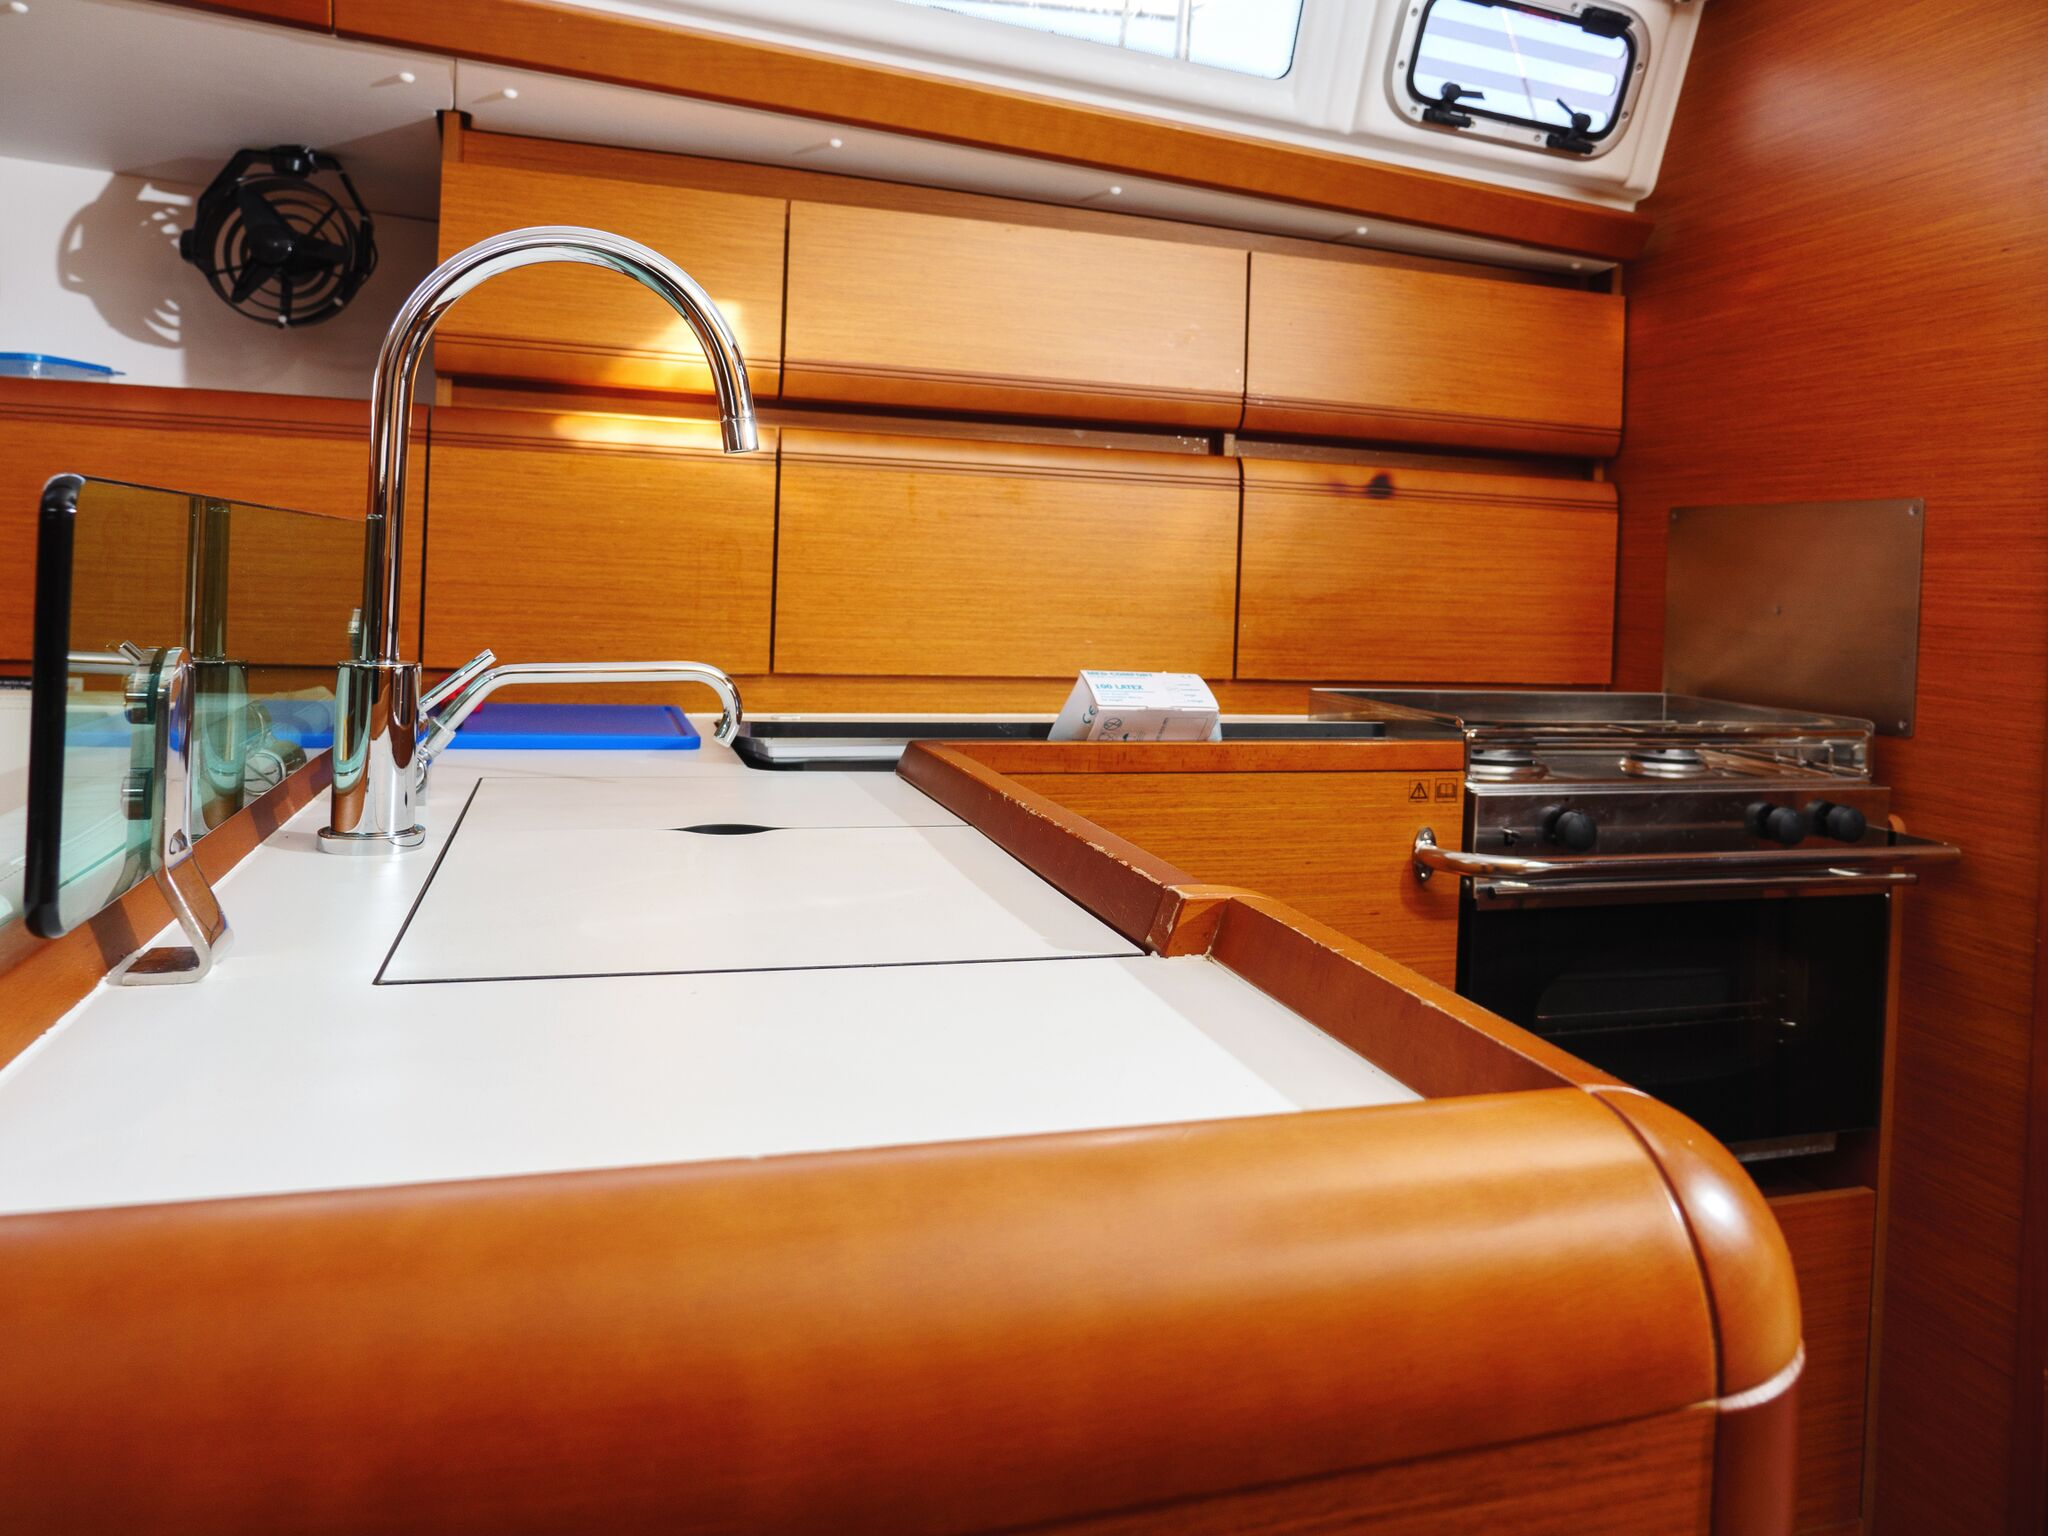 Sun Odyssey 449 (Odessa) Interior - kitchen (photo taken 2019) - 2